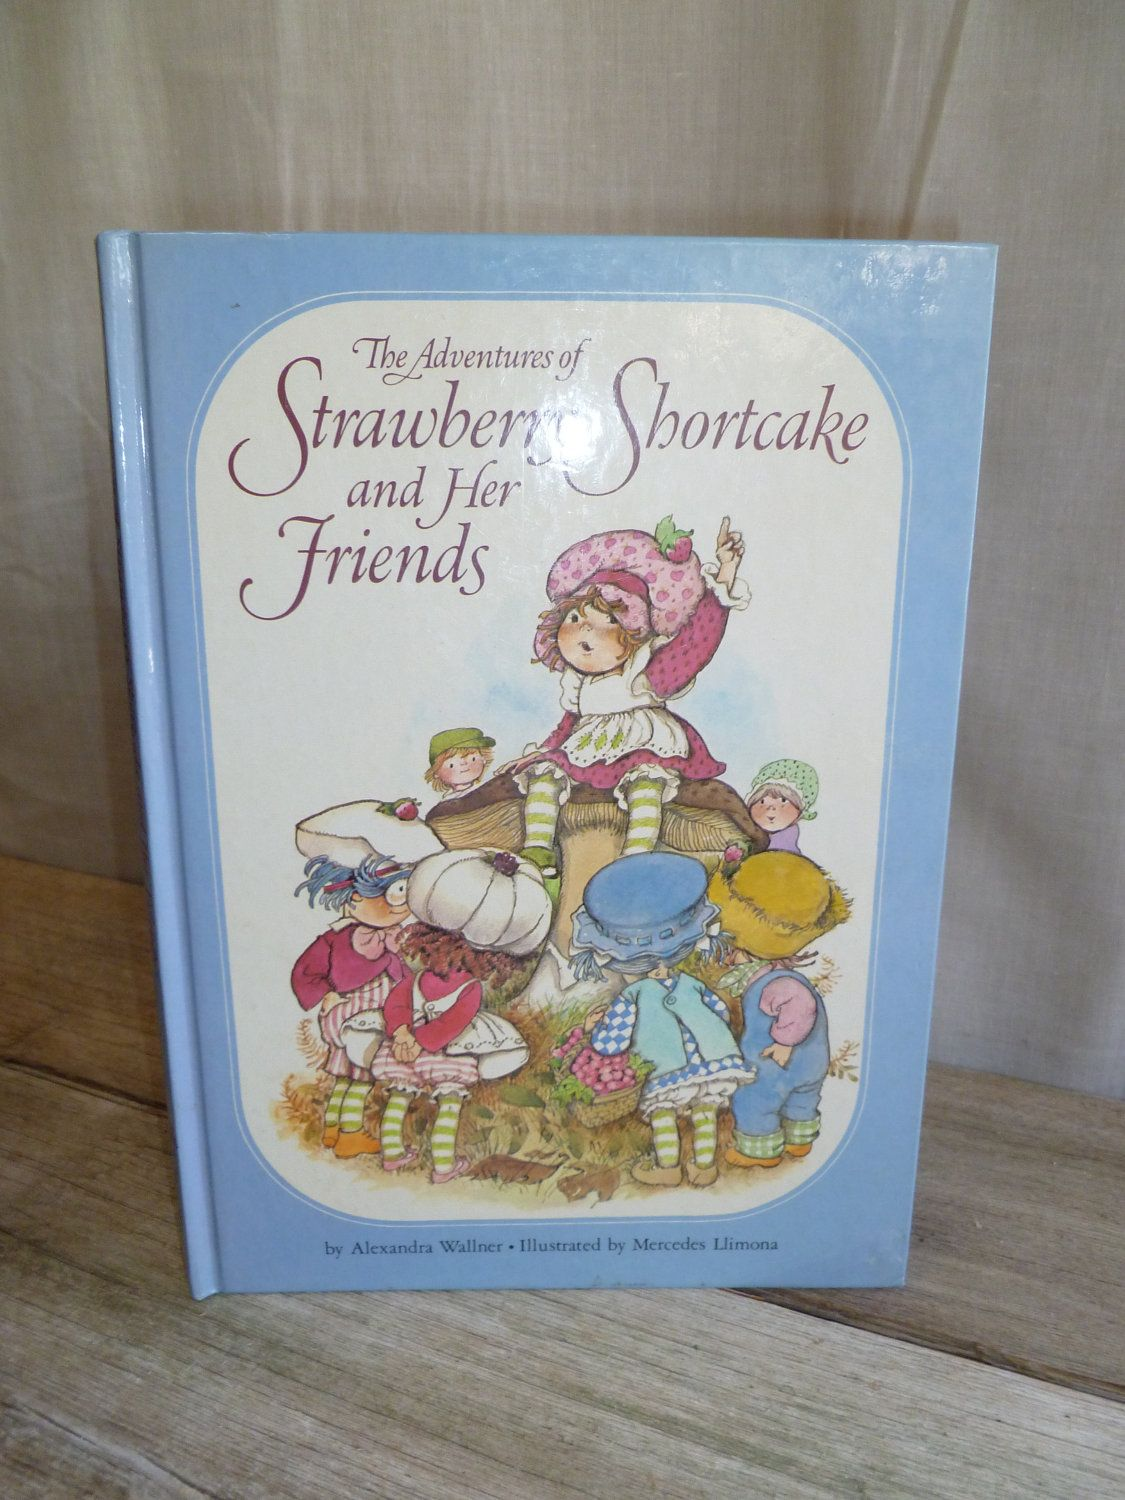 I had a Strawberry Shortcake book. I think it was this one.